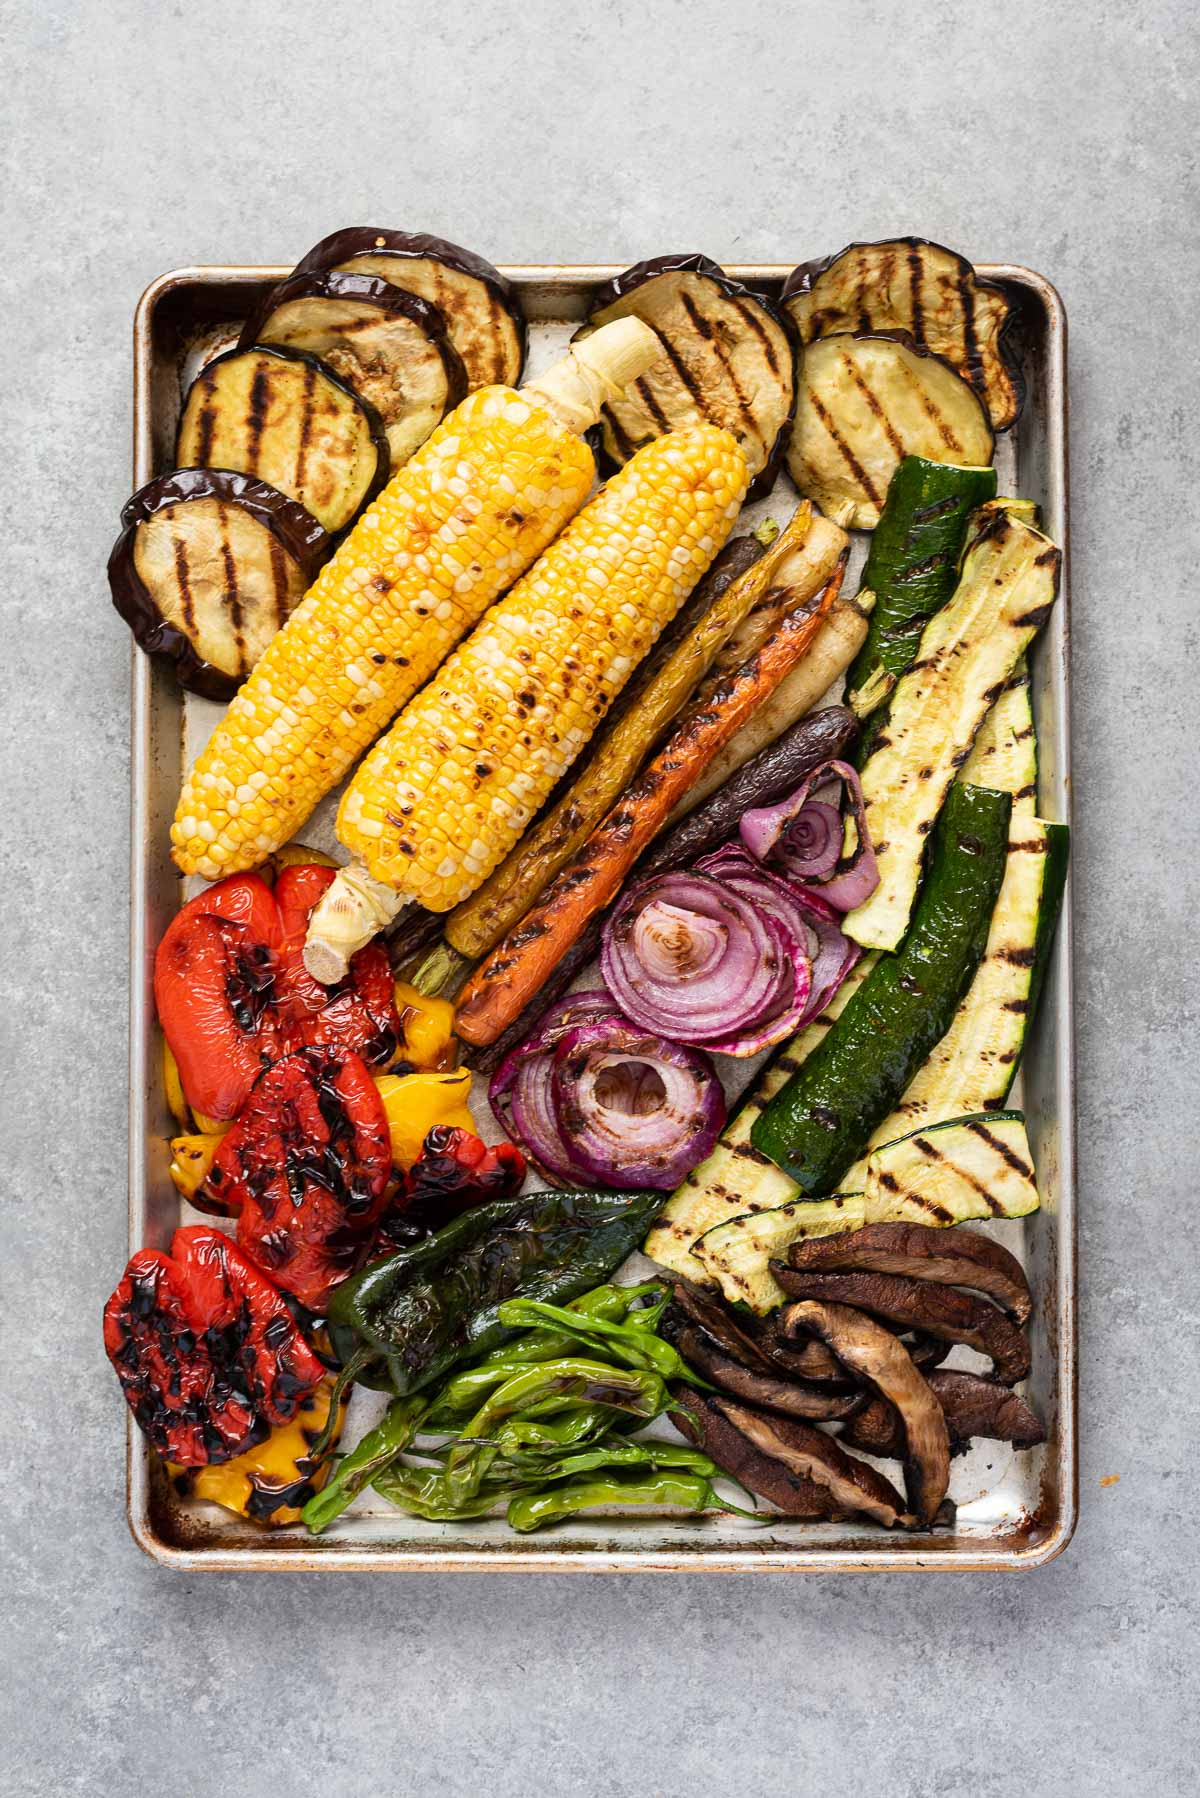 Rimmed baking sheet filled with grilled vegetables